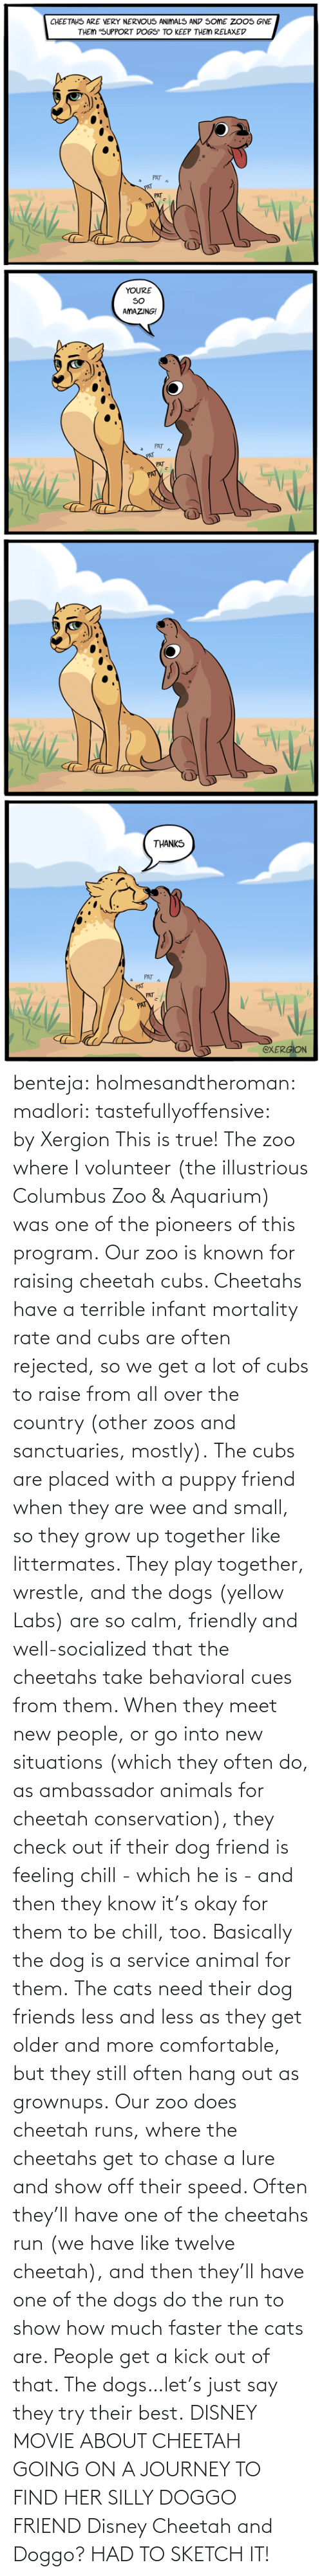 country: benteja:  holmesandtheroman:  madlori:  tastefullyoffensive: by Xergion This is true! The zoo where I volunteer (the illustrious Columbus Zoo & Aquarium) was one of the pioneers of this program. Our zoo is known for raising cheetah cubs. Cheetahs have a terrible infant mortality rate and cubs are often rejected, so we get a lot of cubs to raise from all over the country (other zoos and sanctuaries, mostly). The cubs are placed with a puppy friend when they are wee and small, so they grow up together like littermates. They play together, wrestle, and the dogs (yellow Labs) are so calm, friendly and well-socialized that the cheetahs take behavioral cues from them. When they meet new people, or go into new situations (which they often do, as ambassador animals for cheetah conservation), they check out if their dog friend is feeling chill - which he is - and then they know it's okay for them to be chill, too. Basically the dog is a service animal for them. The cats need their dog friends less and less as they get older and more comfortable, but they still often hang out as grownups. Our zoo does cheetah runs, where the cheetahs get to chase a lure and show off their speed. Often they'll have one of the cheetahs run (we have like twelve cheetah), and then they'll have one of the dogs do the run to show how much faster the cats are. People get a kick out of that. The dogs…let's just say they try their best.   DISNEY MOVIE ABOUT CHEETAH GOING ON A JOURNEY TO FIND HER SILLY DOGGO FRIEND  Disney Cheetah and Doggo? HAD TO SKETCH IT!